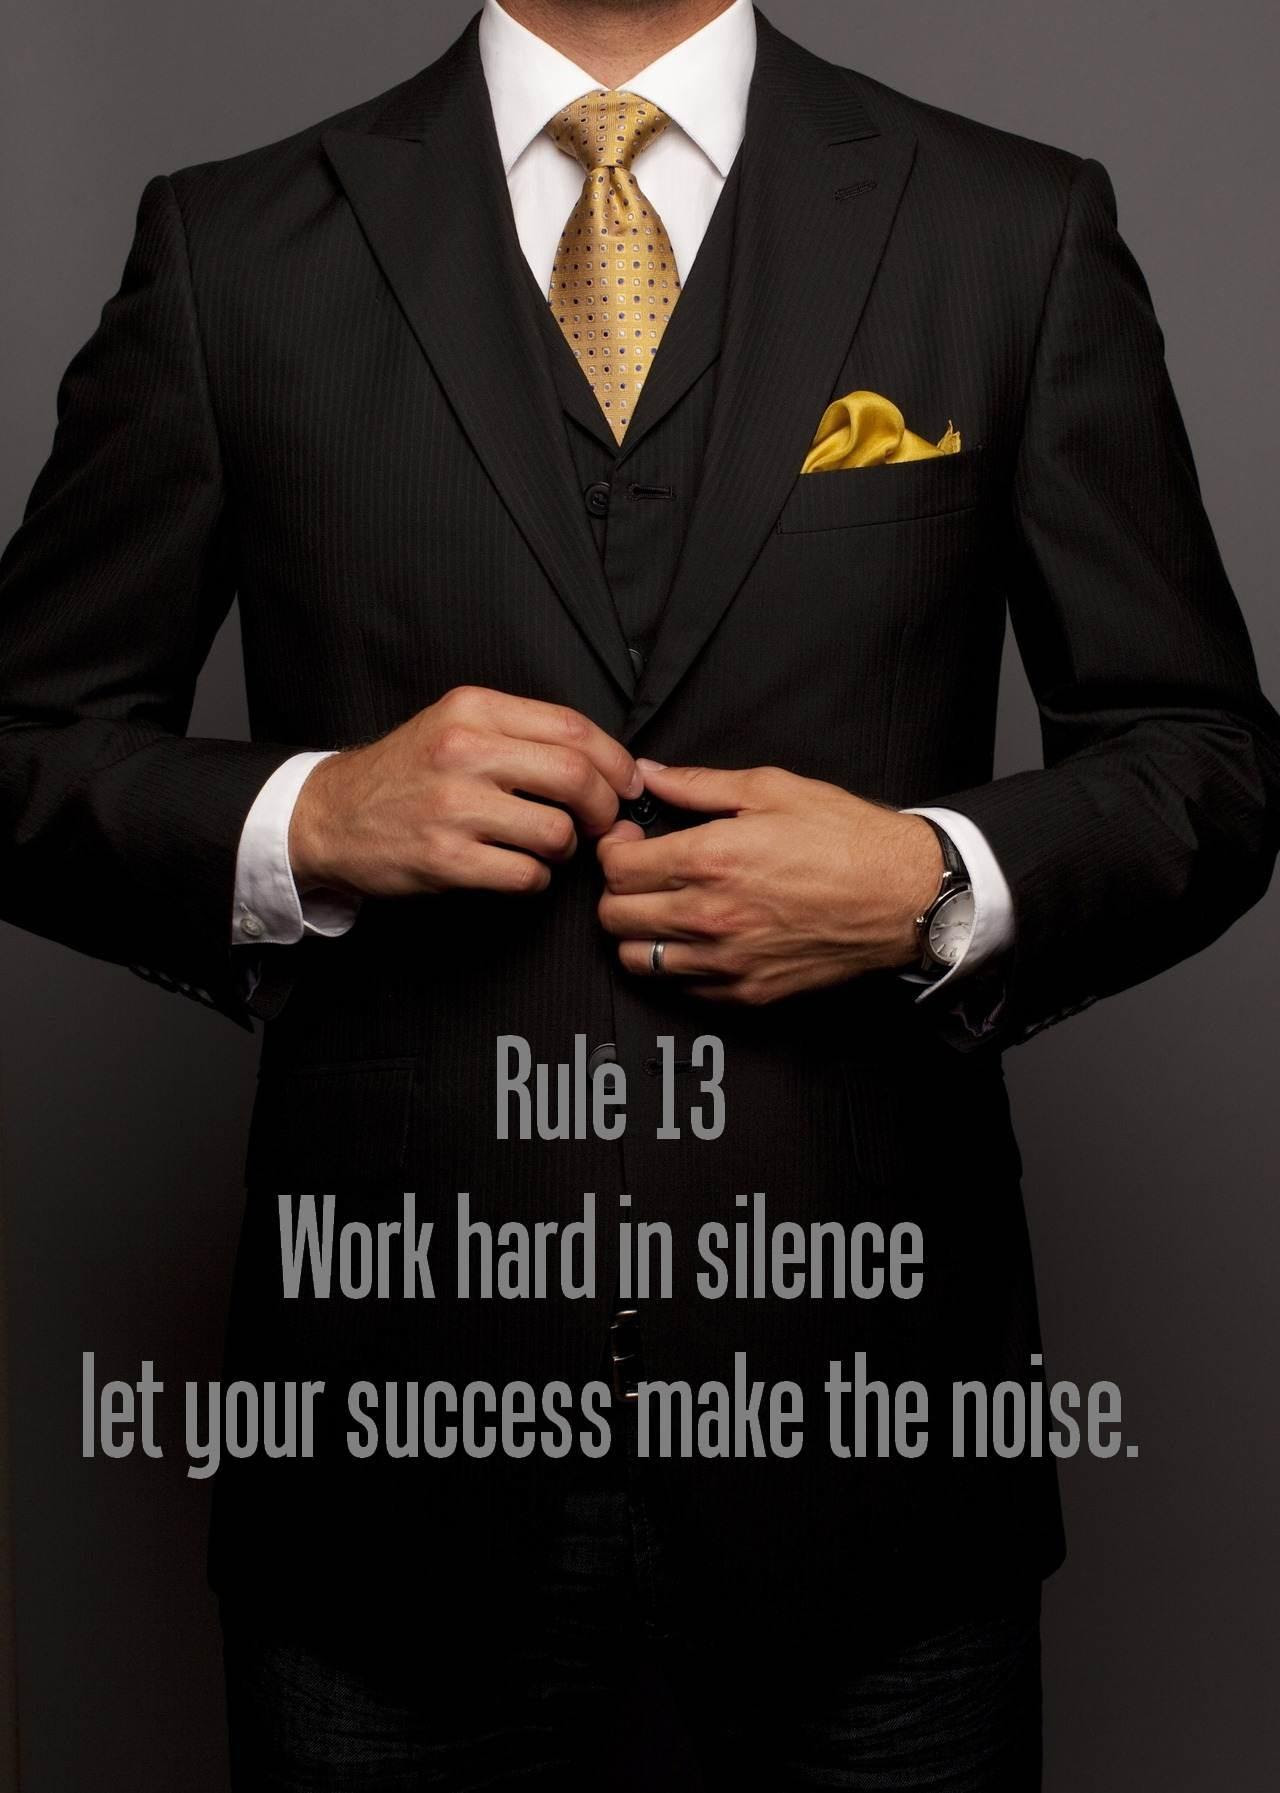 Word Hard In Silence Let Your Success Make The Noise